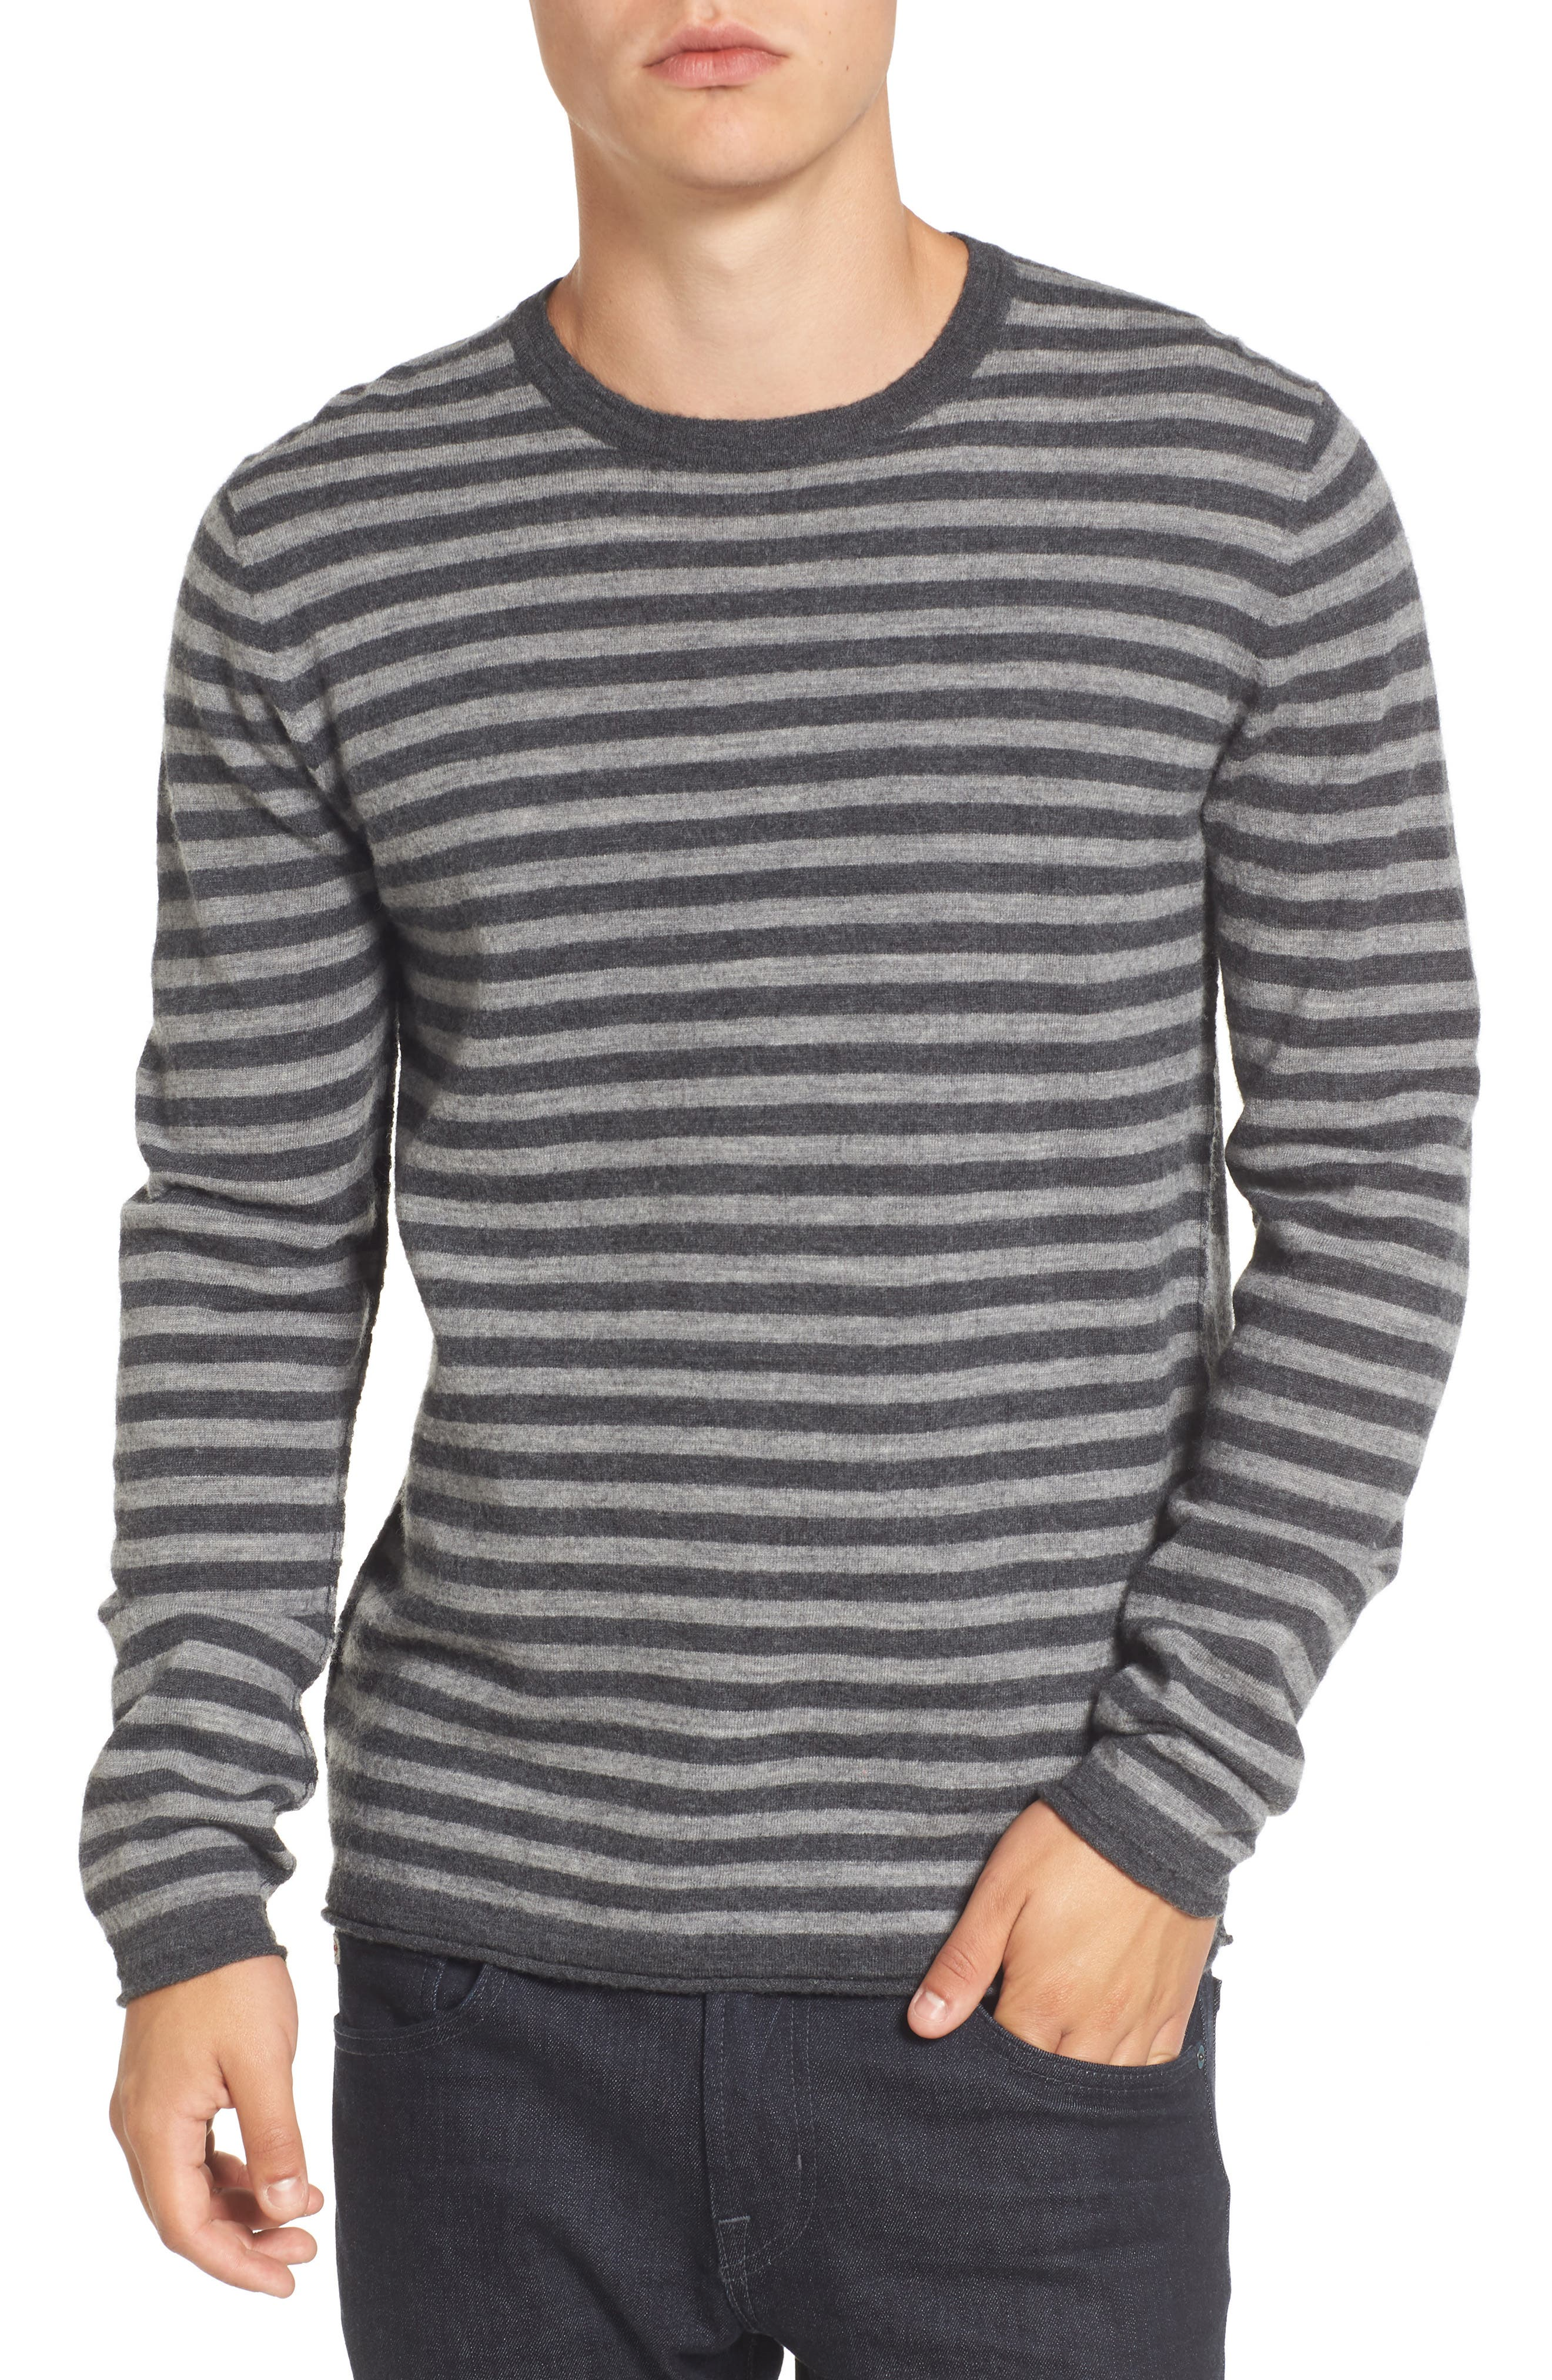 Double Stripe Wool Sweater,                         Main,                         color, Grey Melange/ Mid Grey